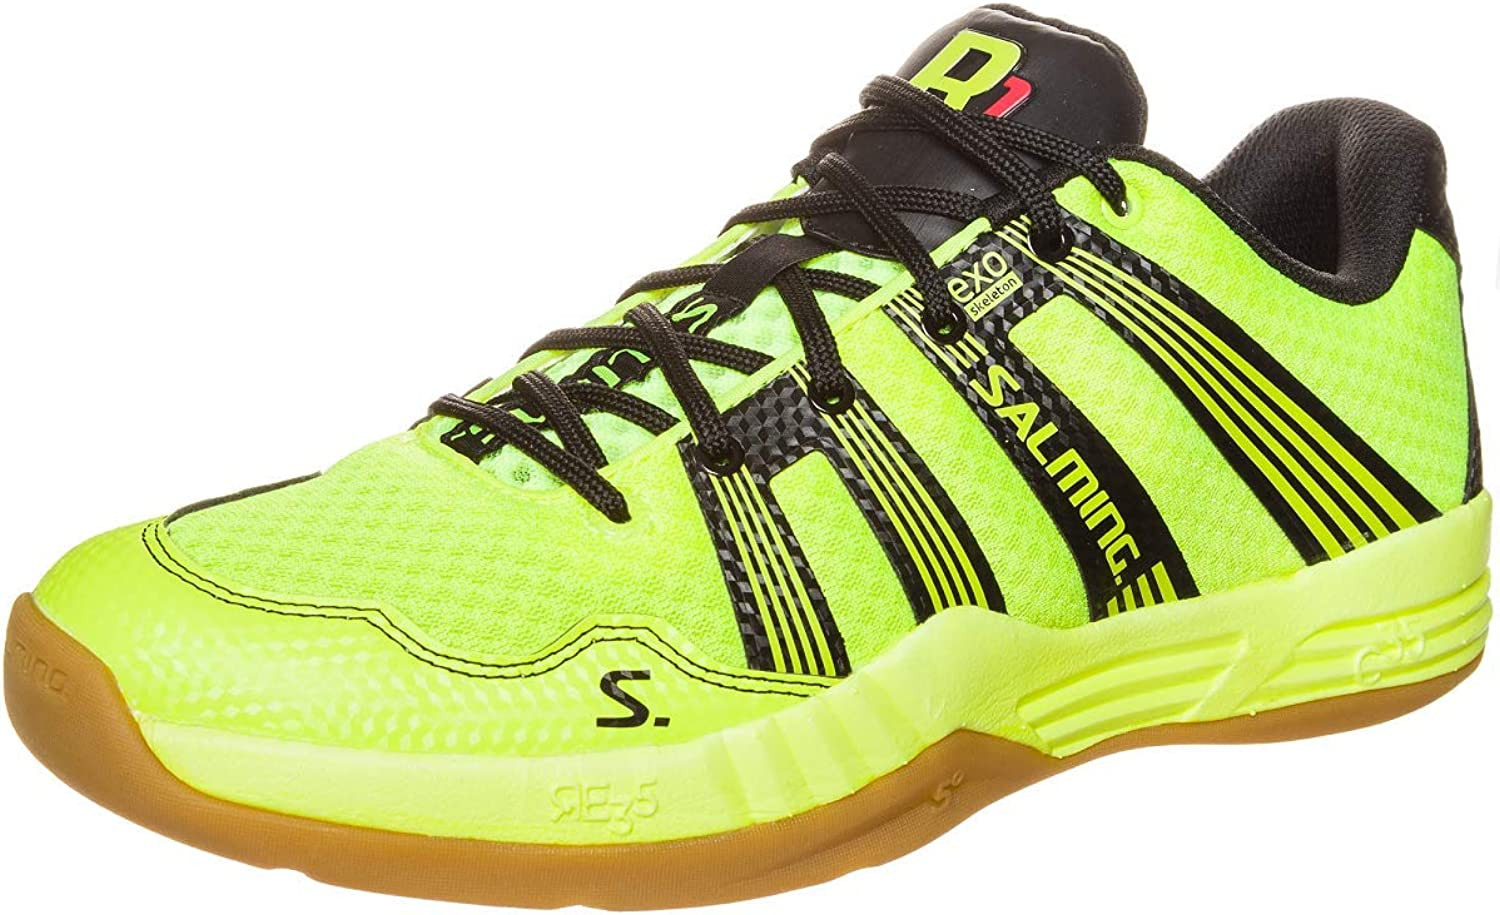 Salming Race R1 2.0 Mens Court shoes, color- Yellow, Size- 12 UK